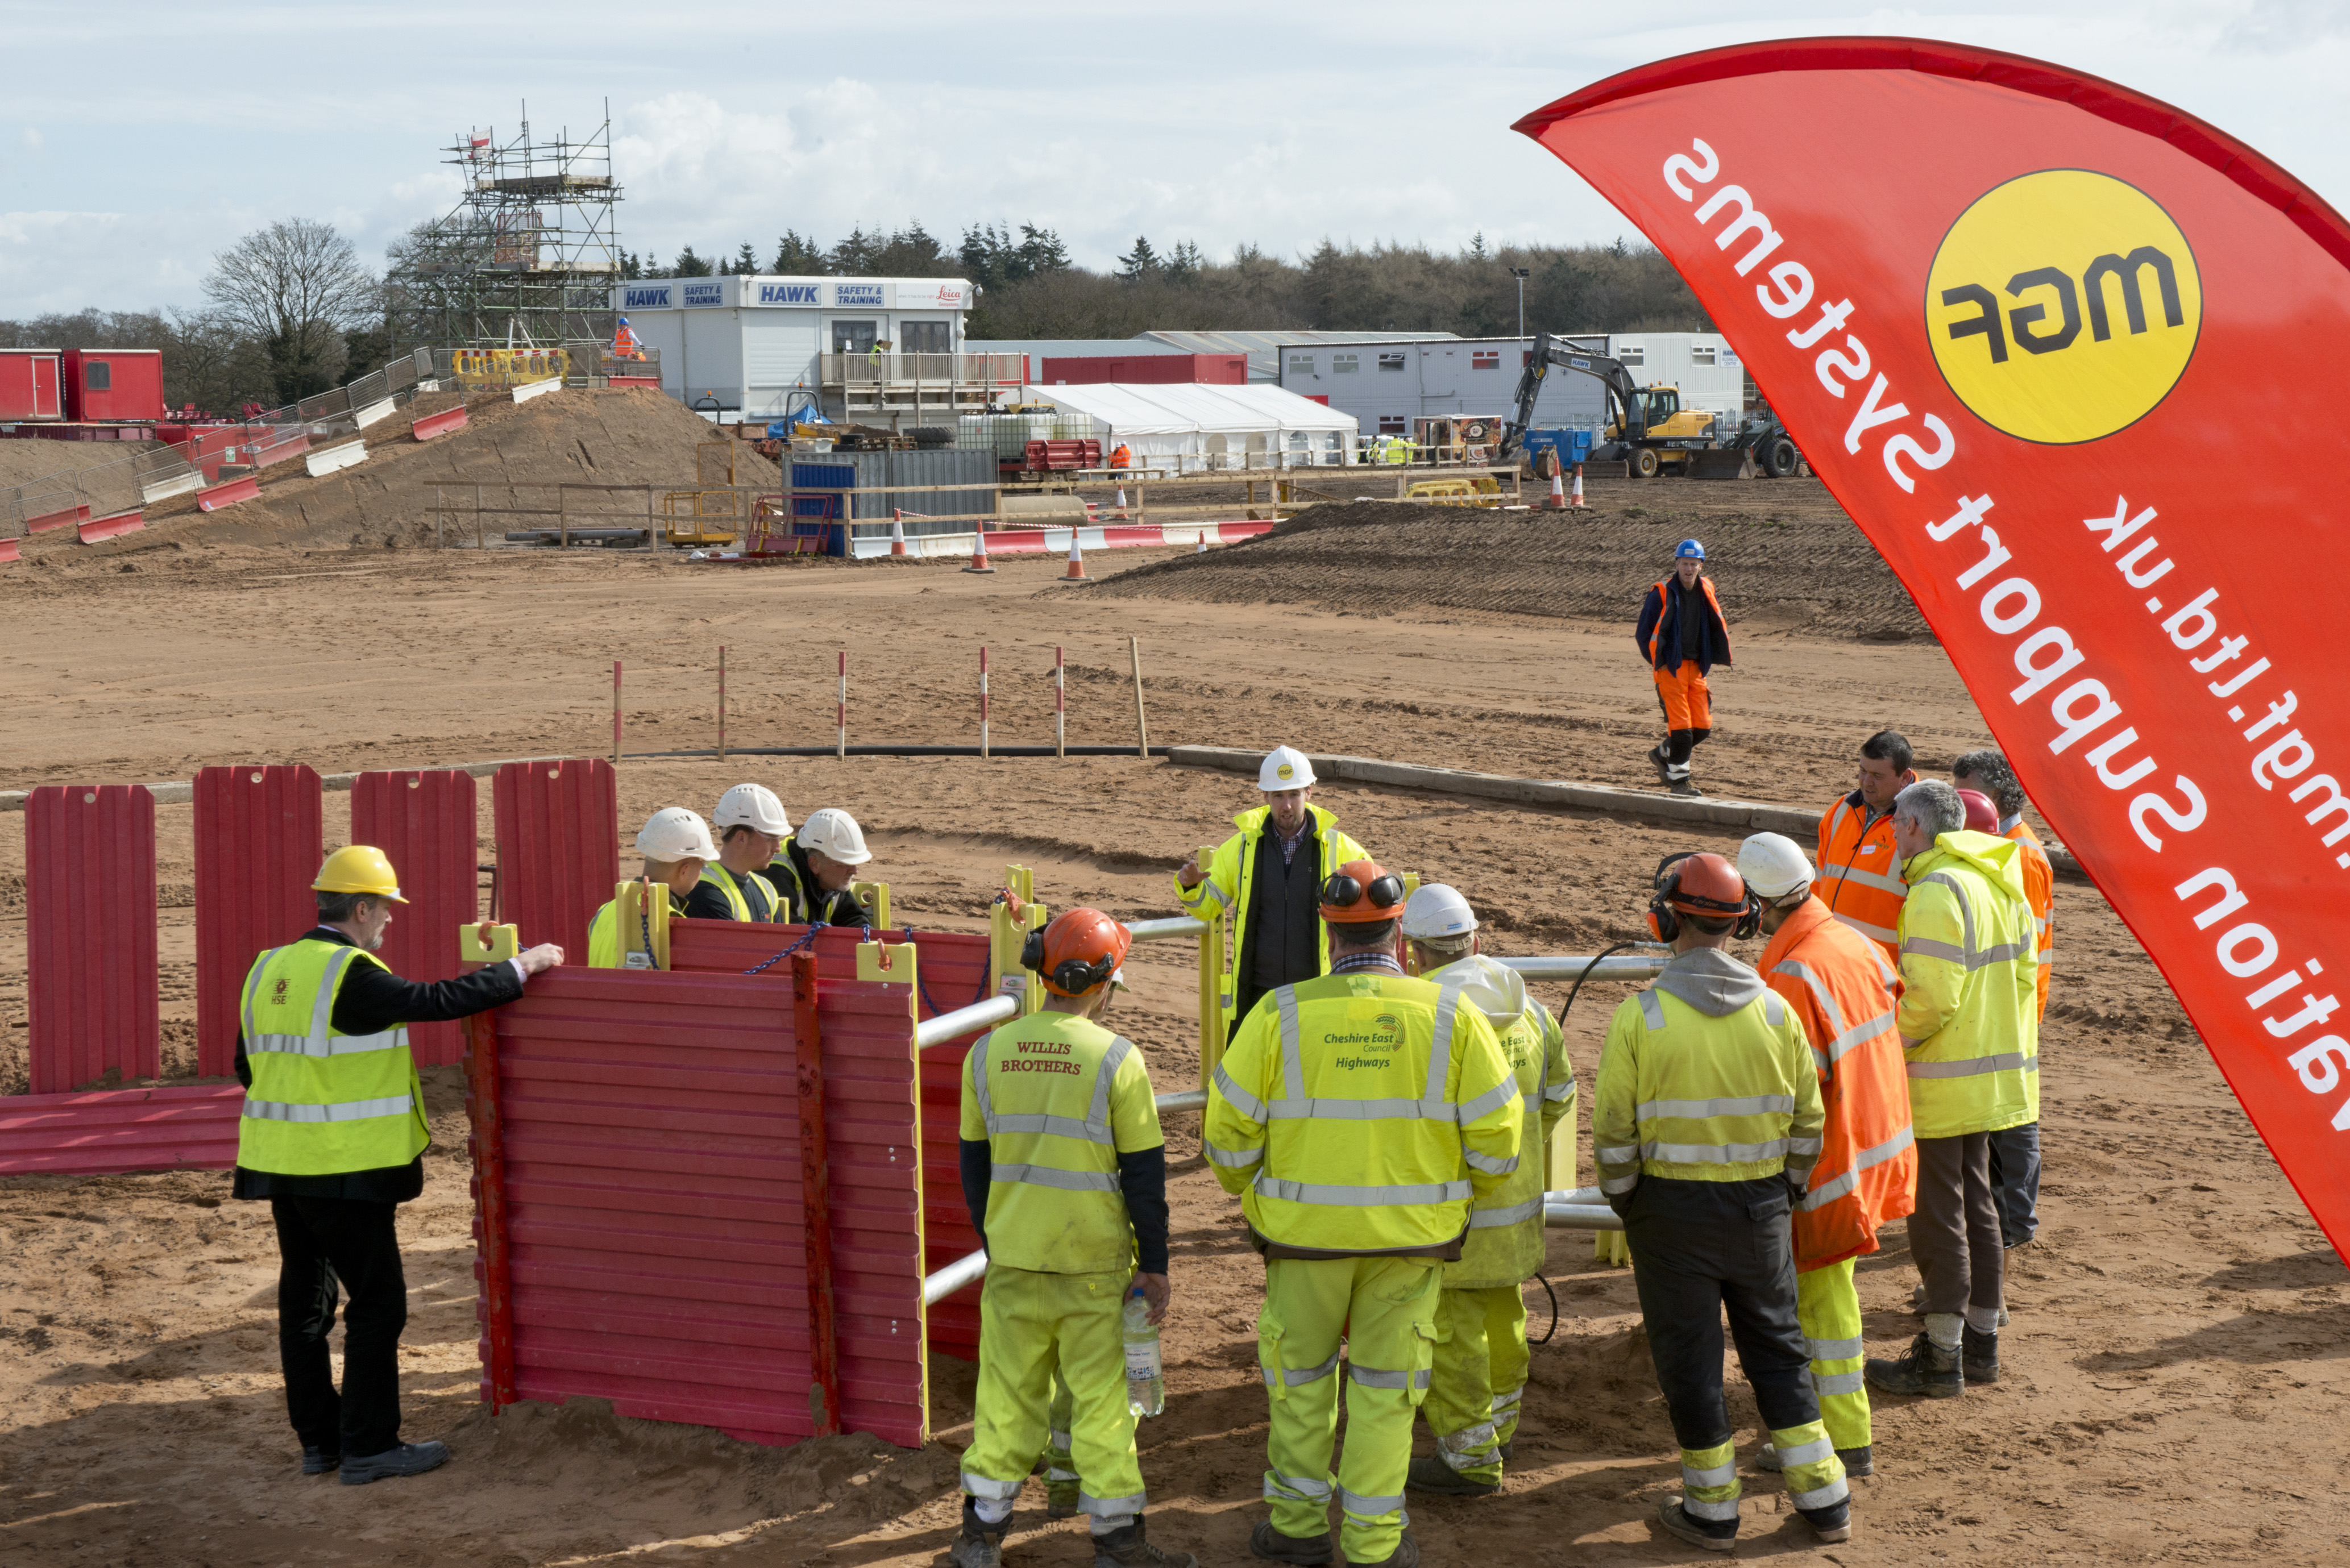 MGF 15 01 040 MGF Support Breaking Ground Working Well Together Event